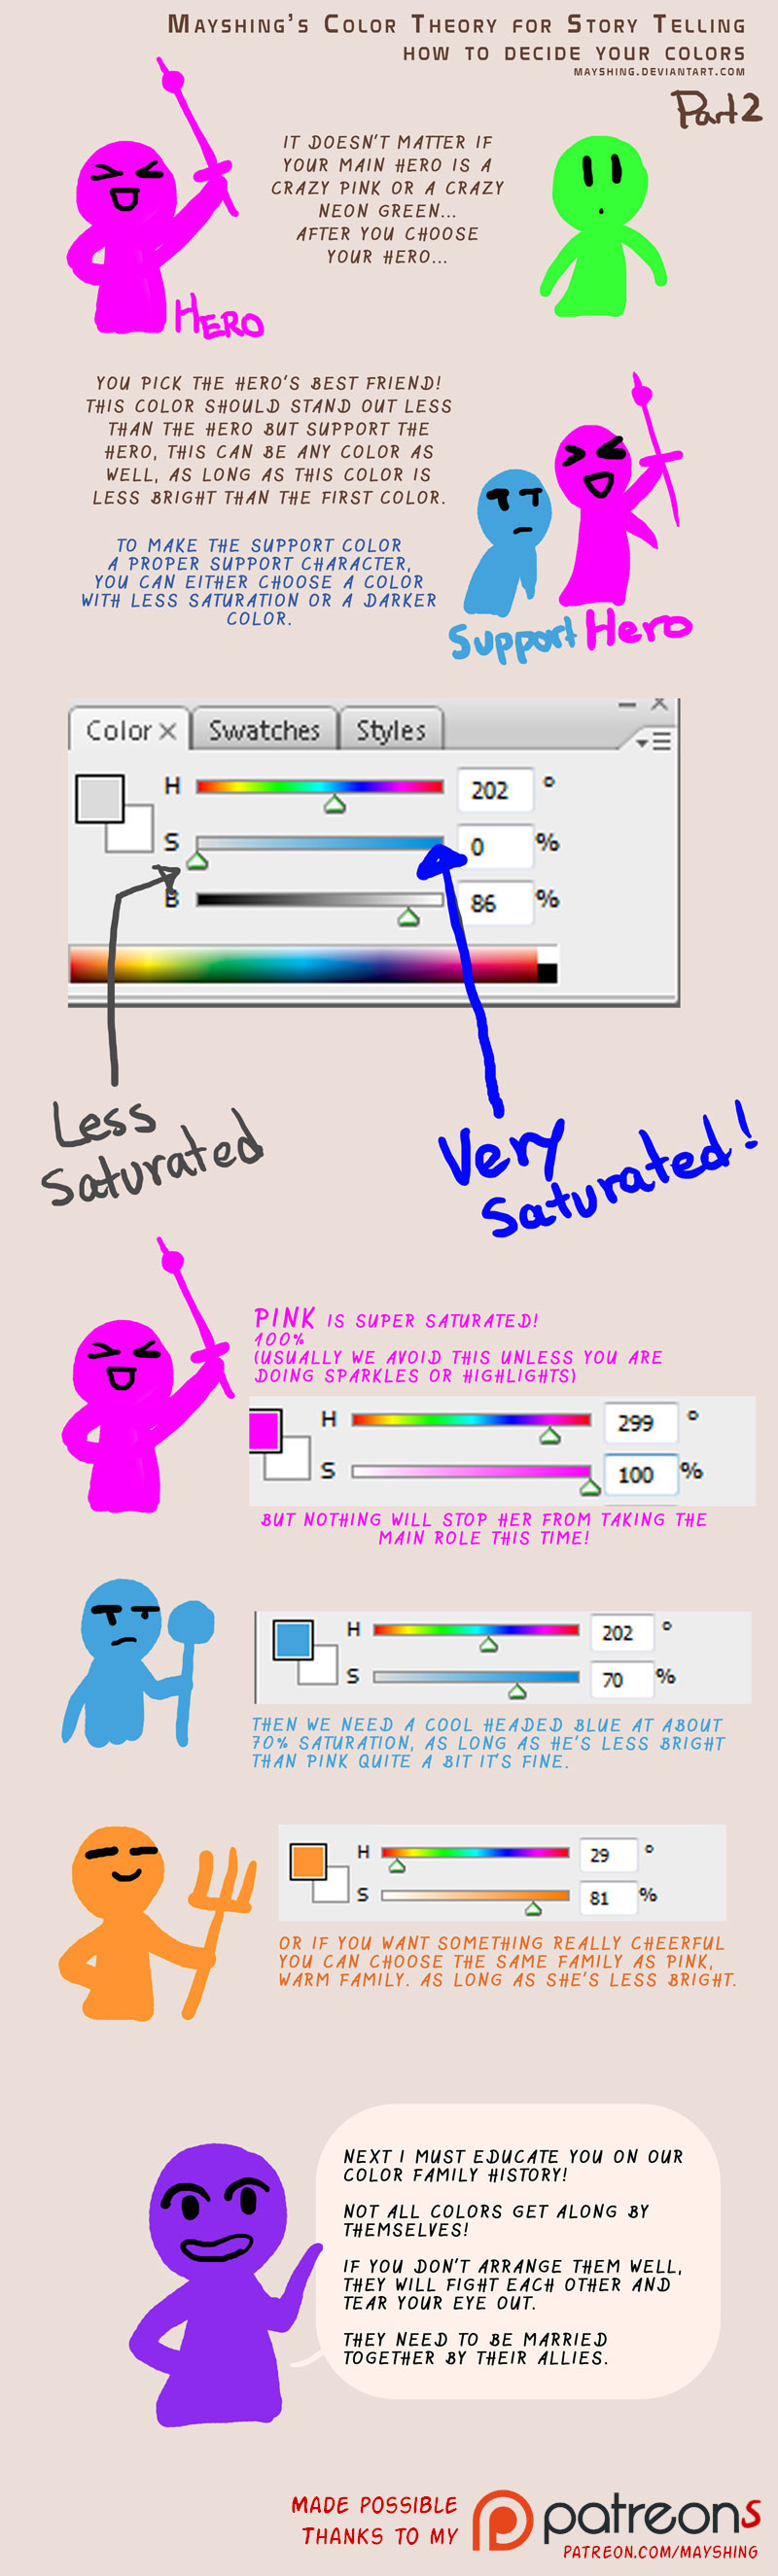 How to pick your colors for storytelling p2 by mayshing